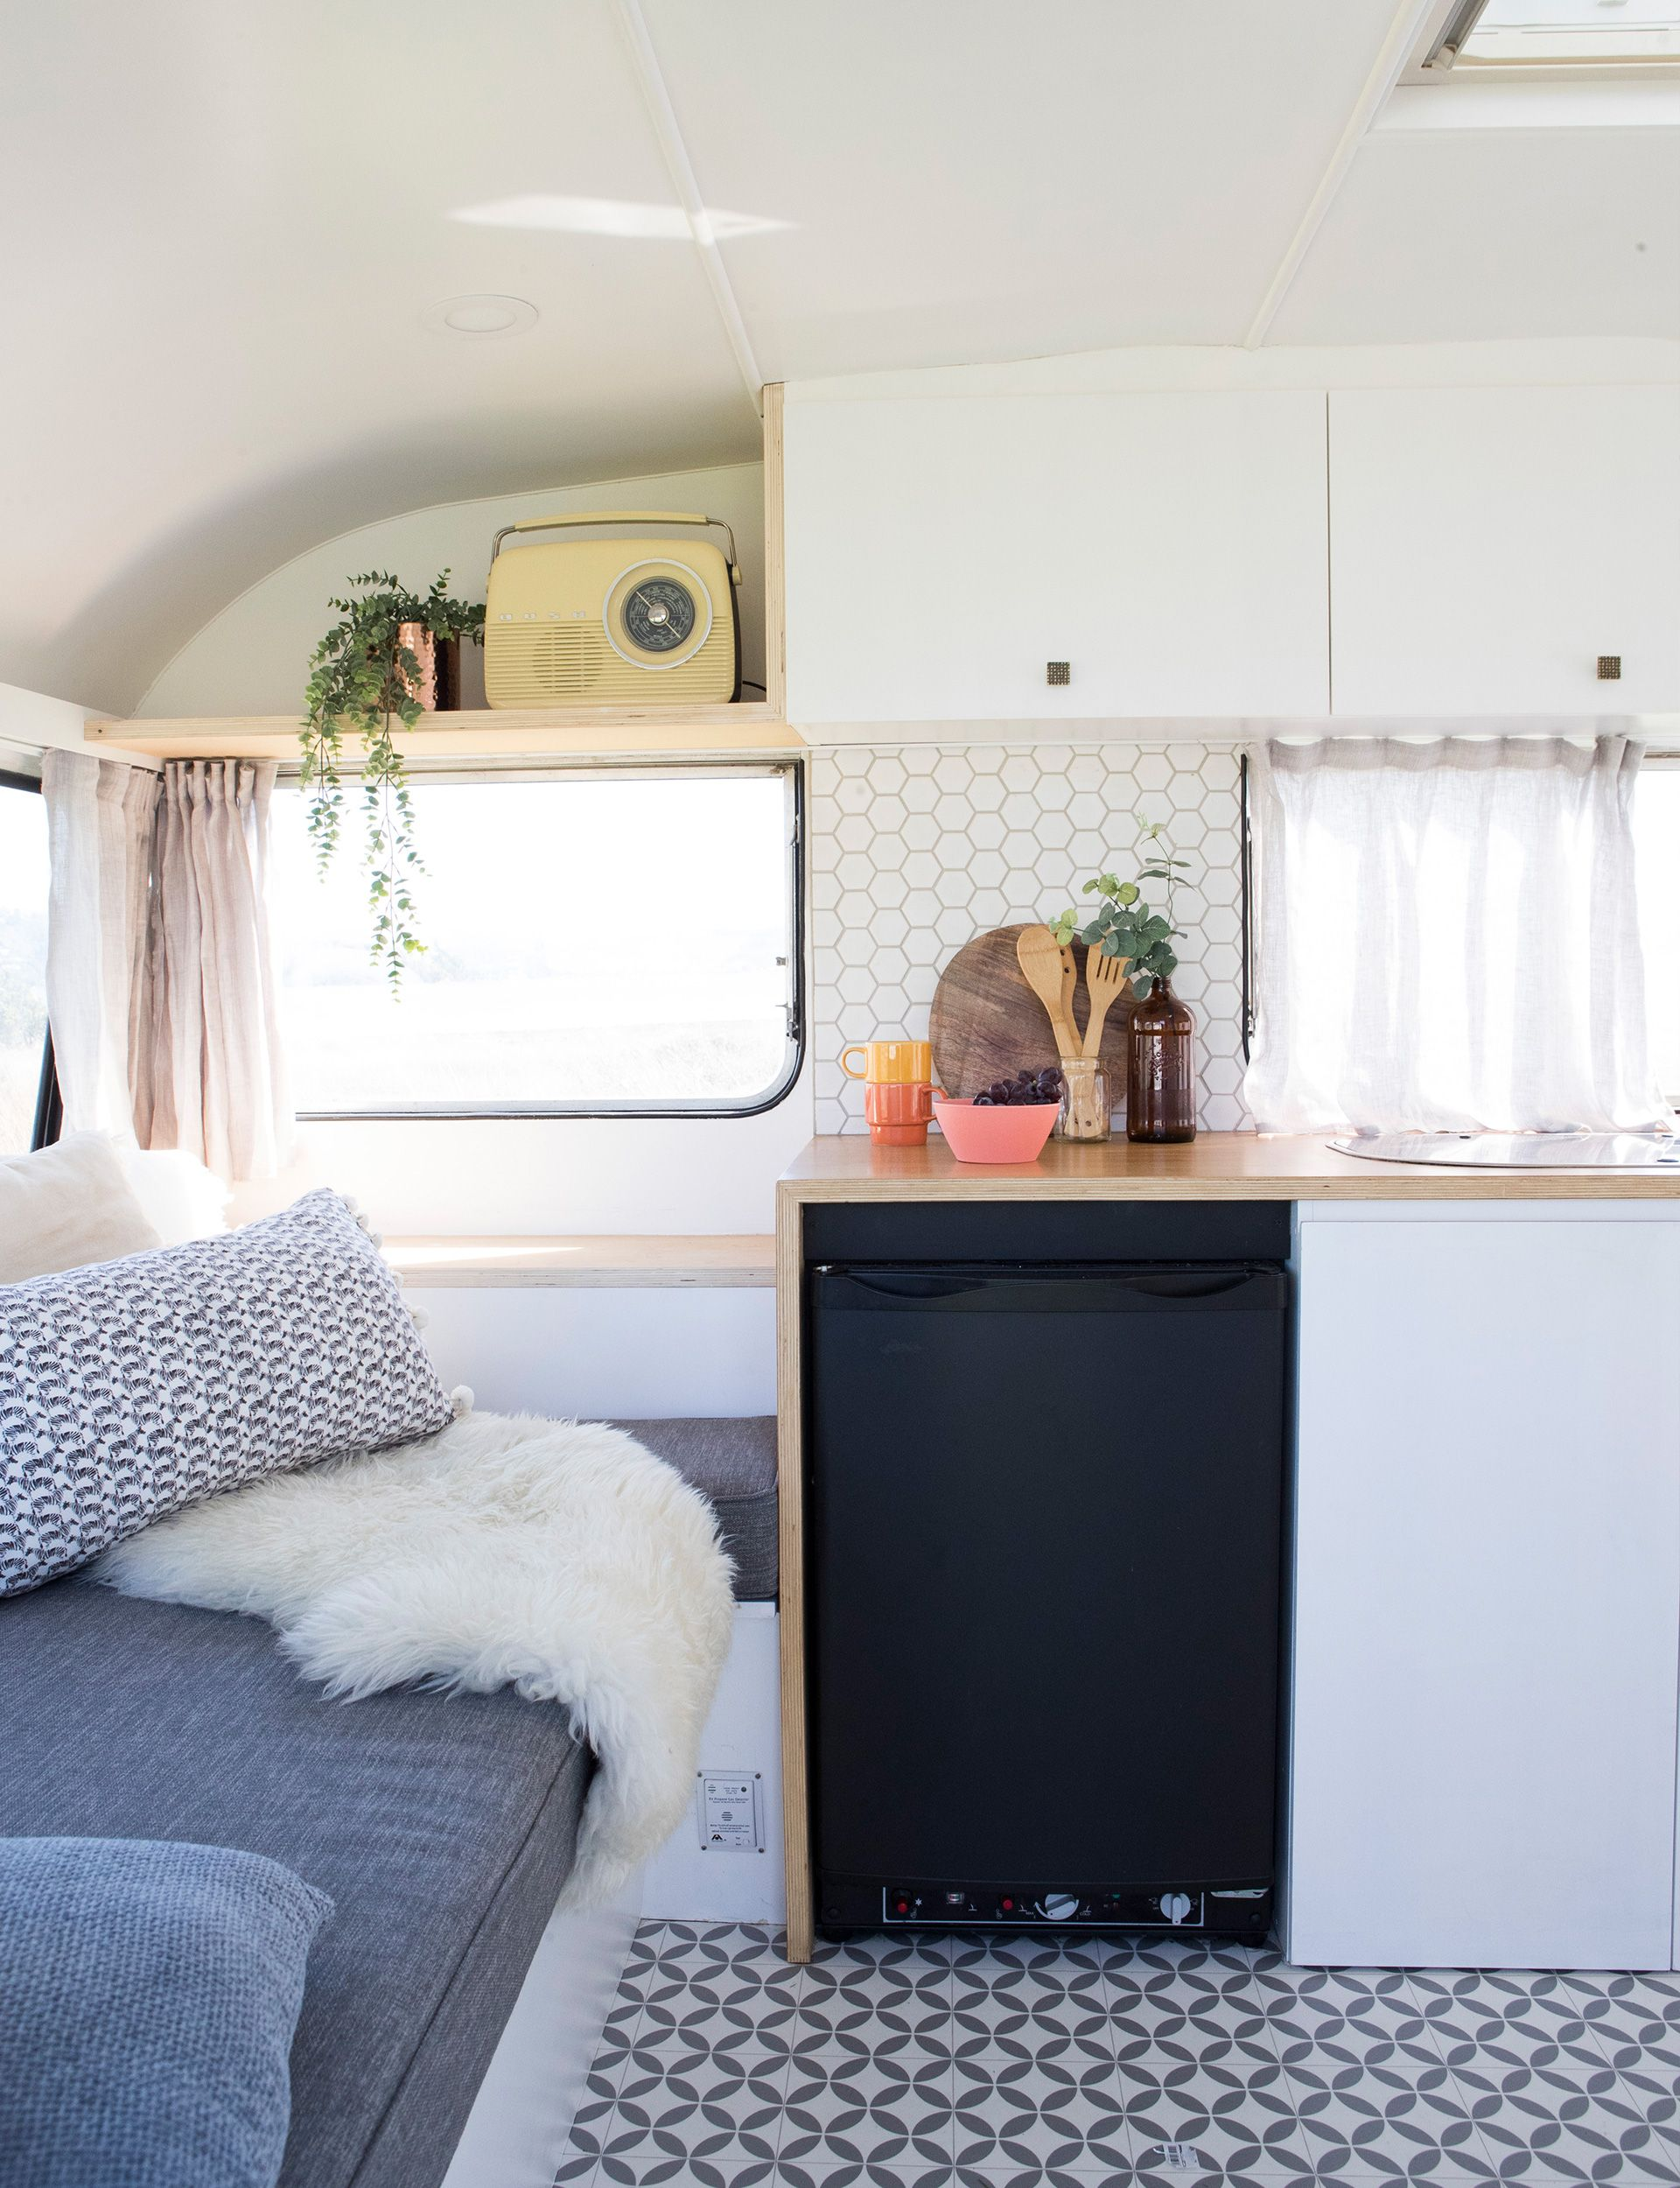 This sweet little caravan has been given the most stylish makeover